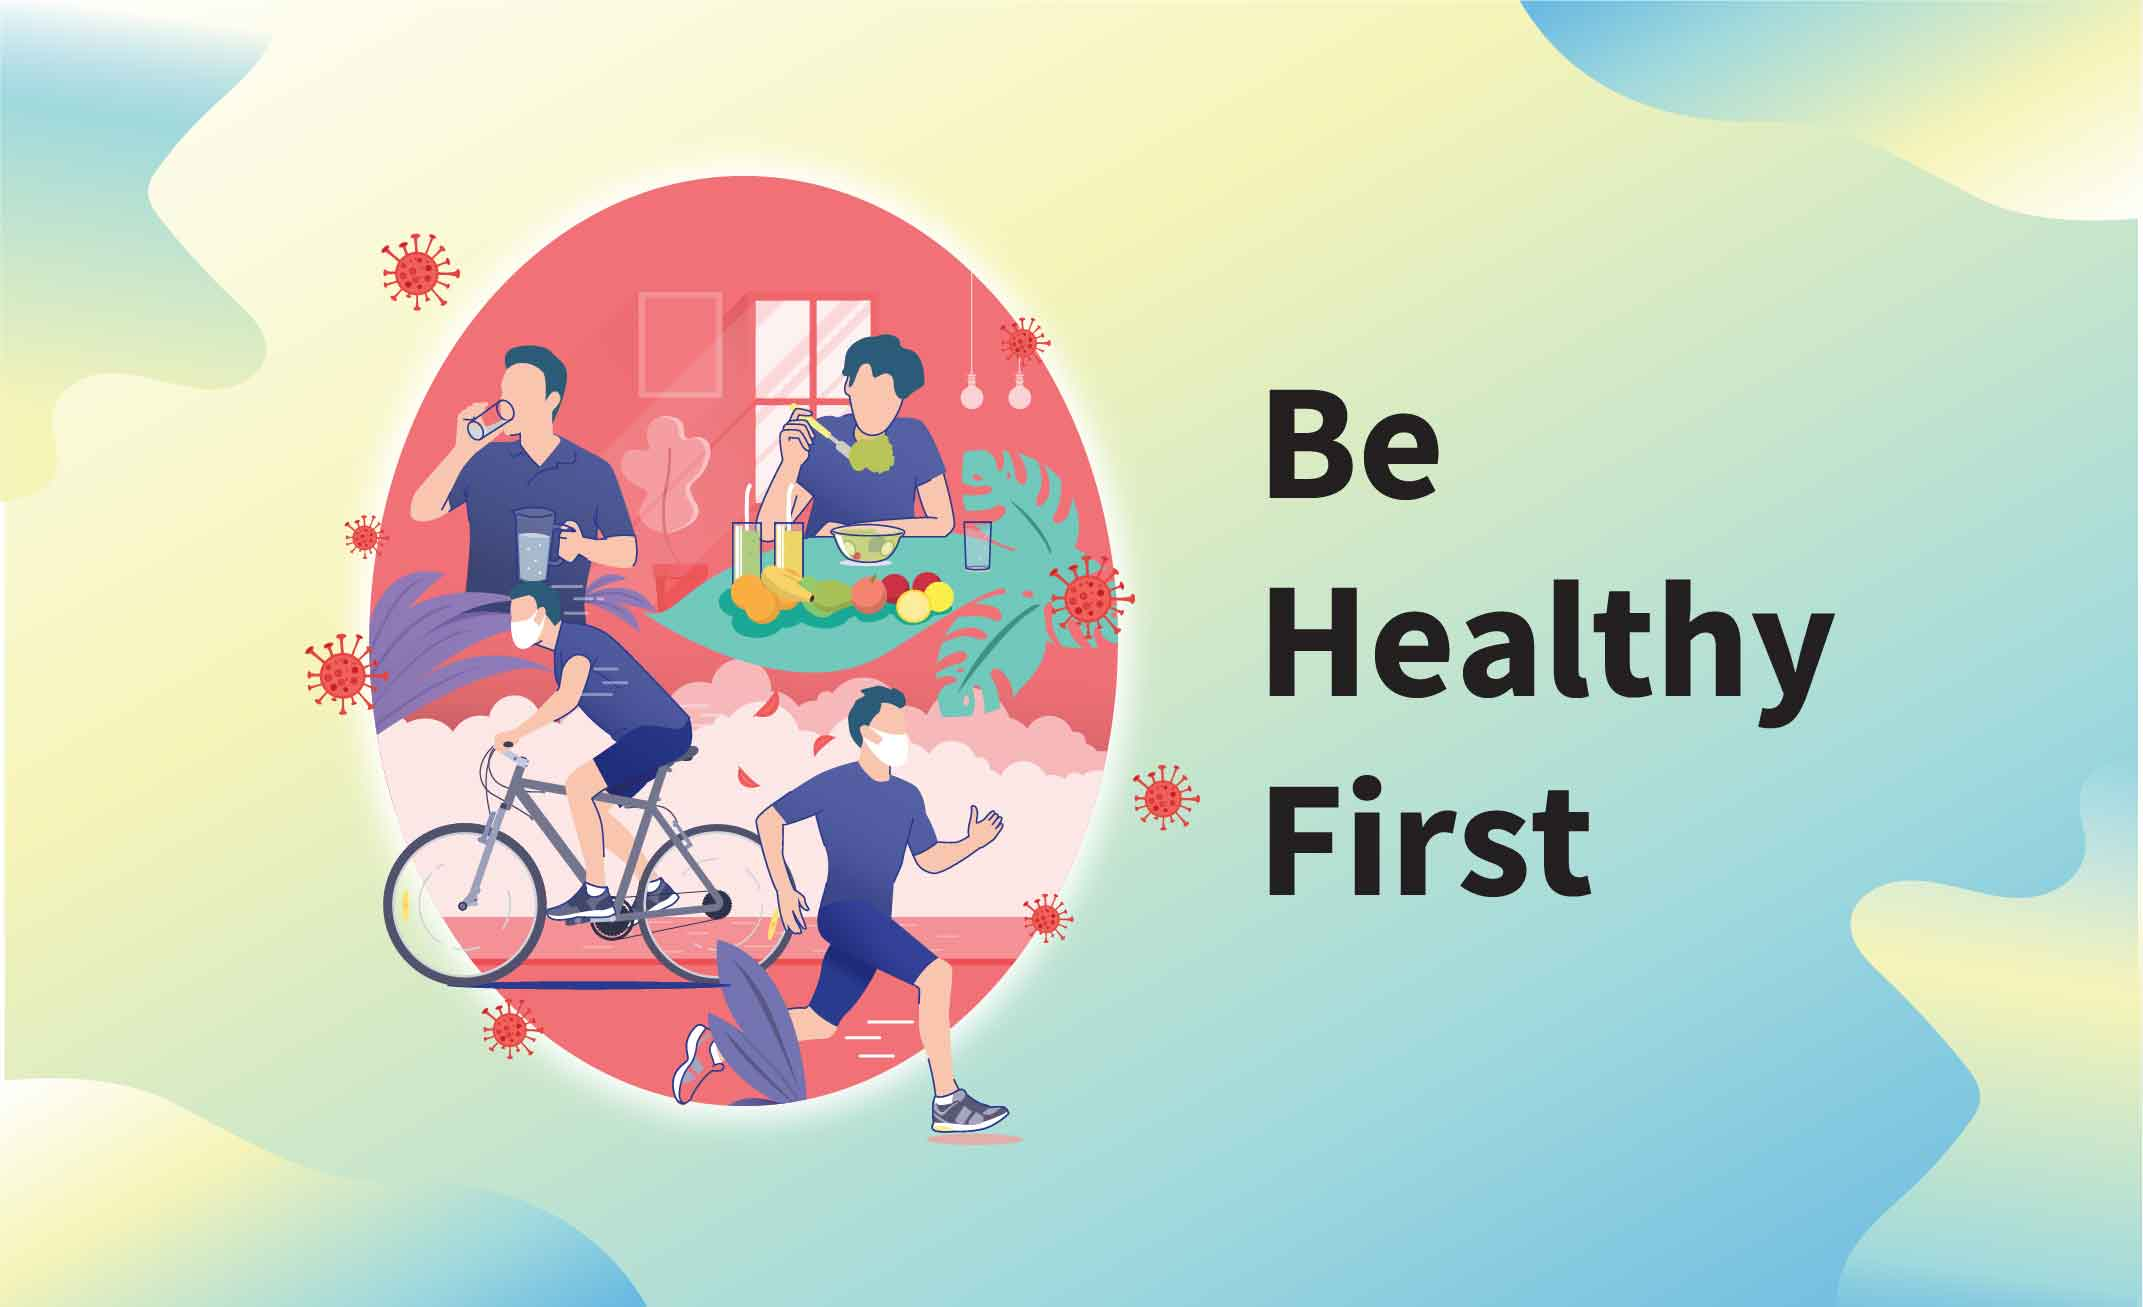 Be Healthy First